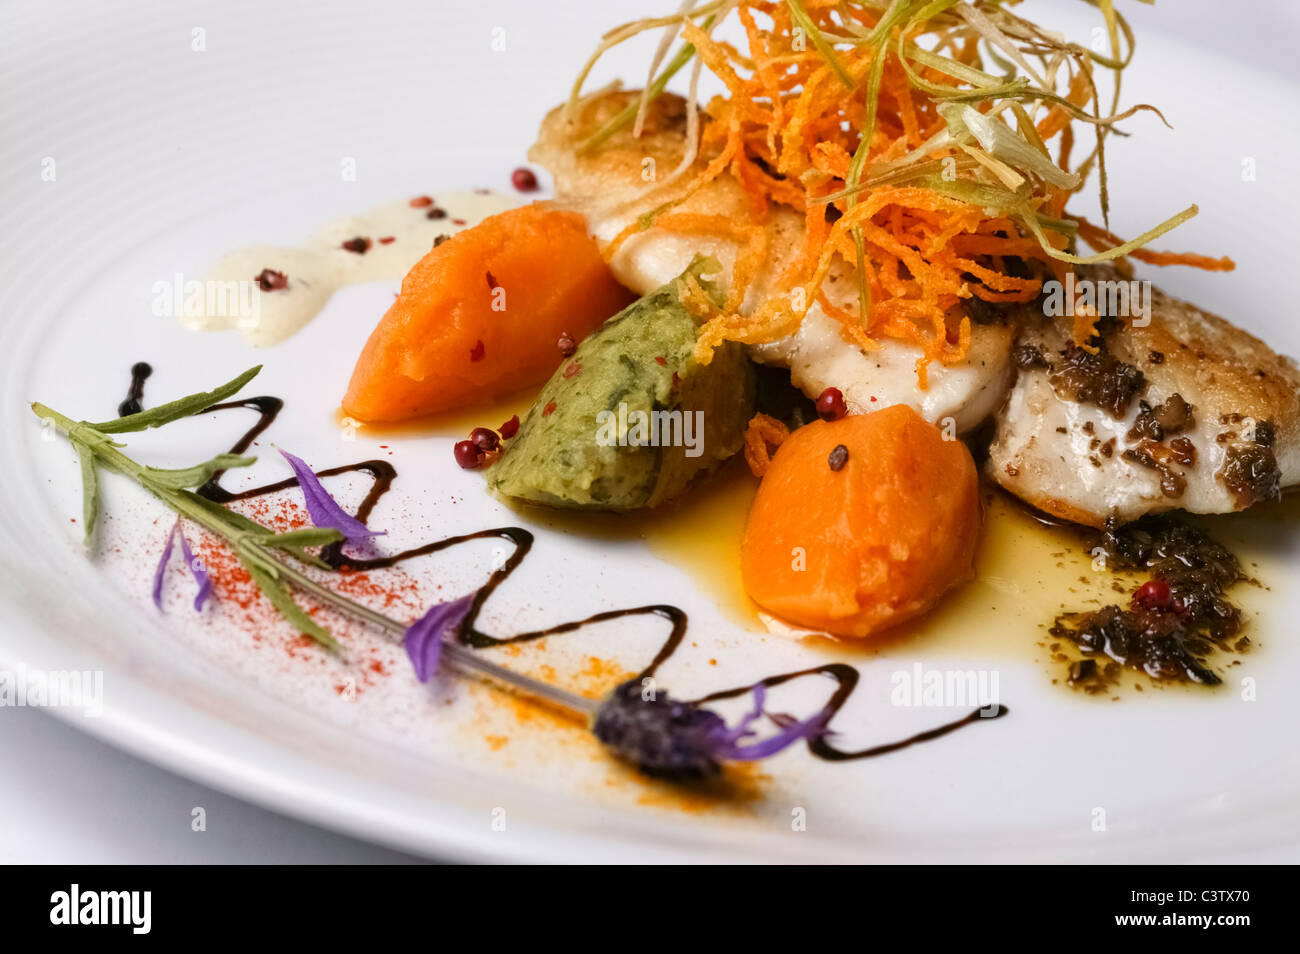 Gourmet fish dishes images galleries for Nouvelle cuisine